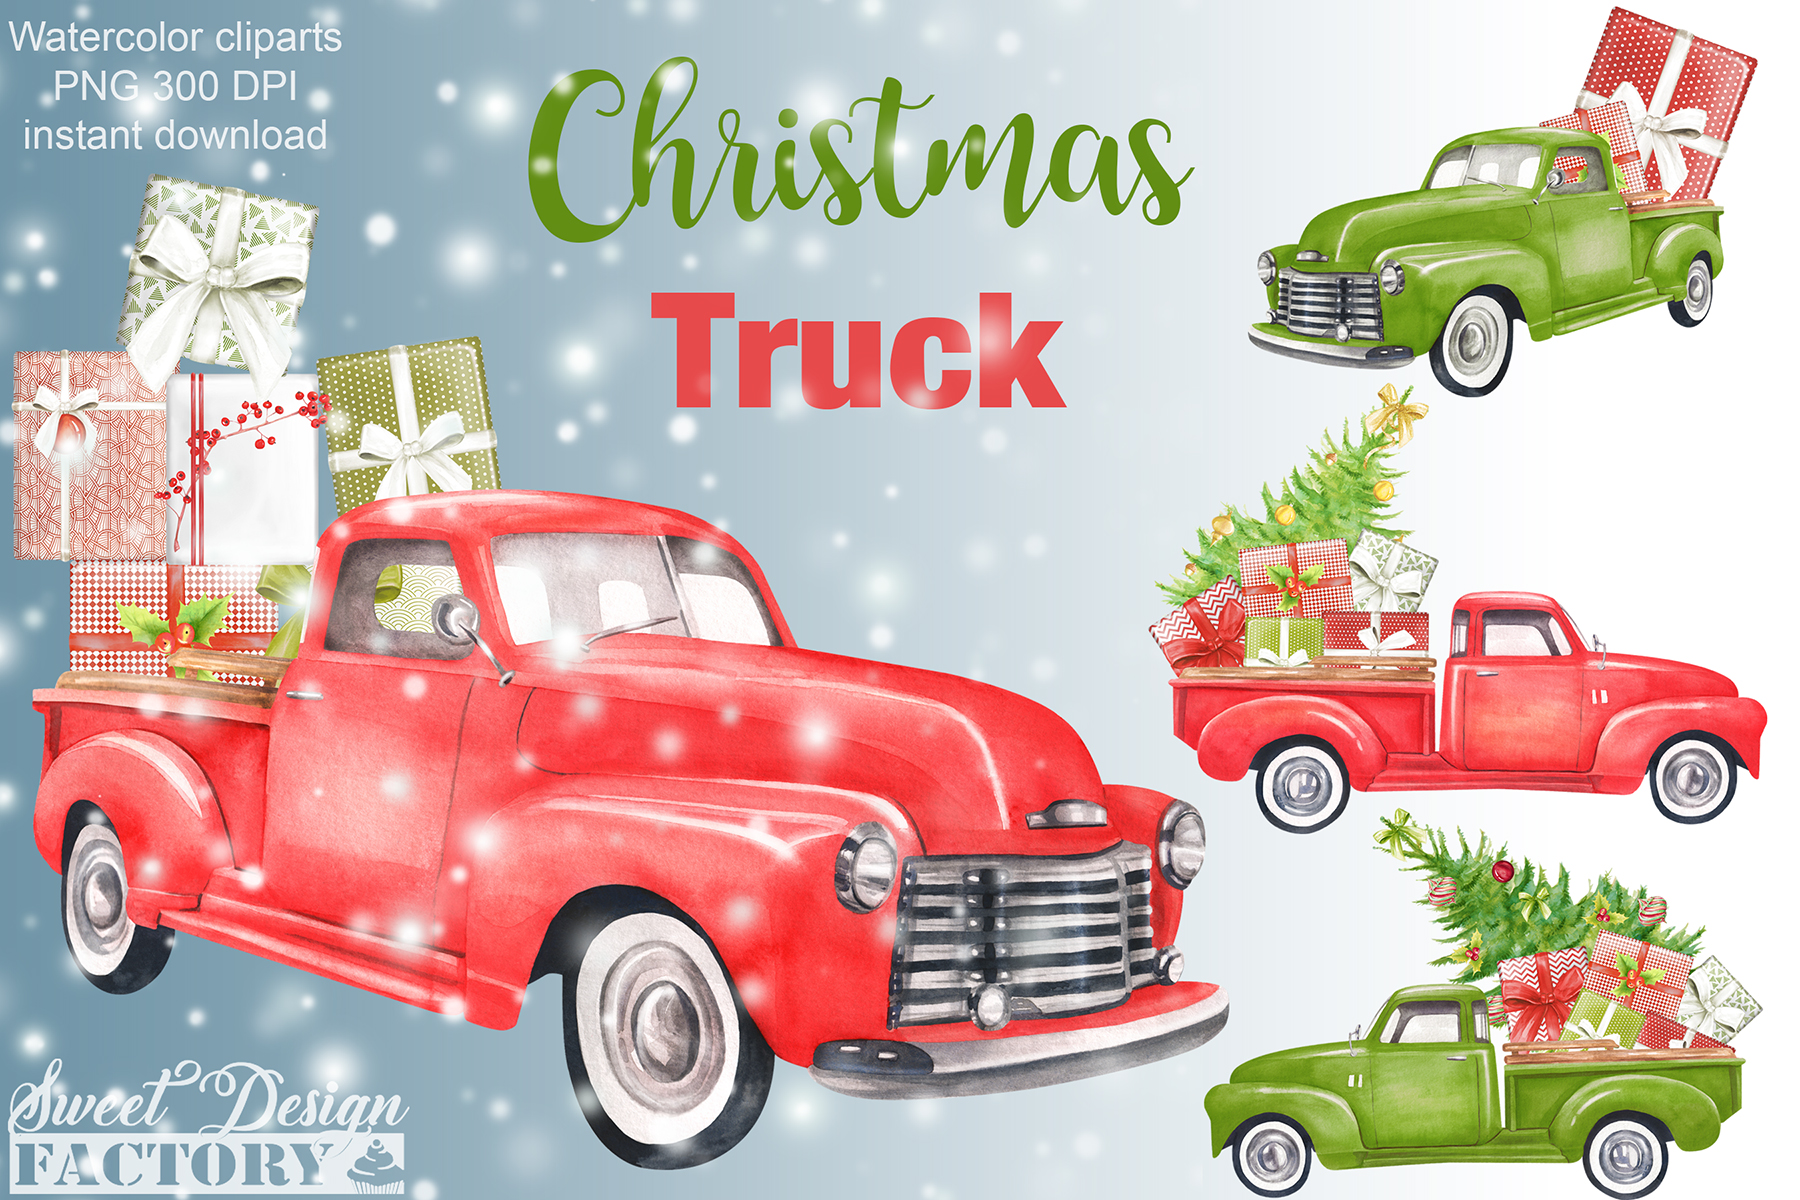 Watercolor Christmas retro truck clipart example image 1